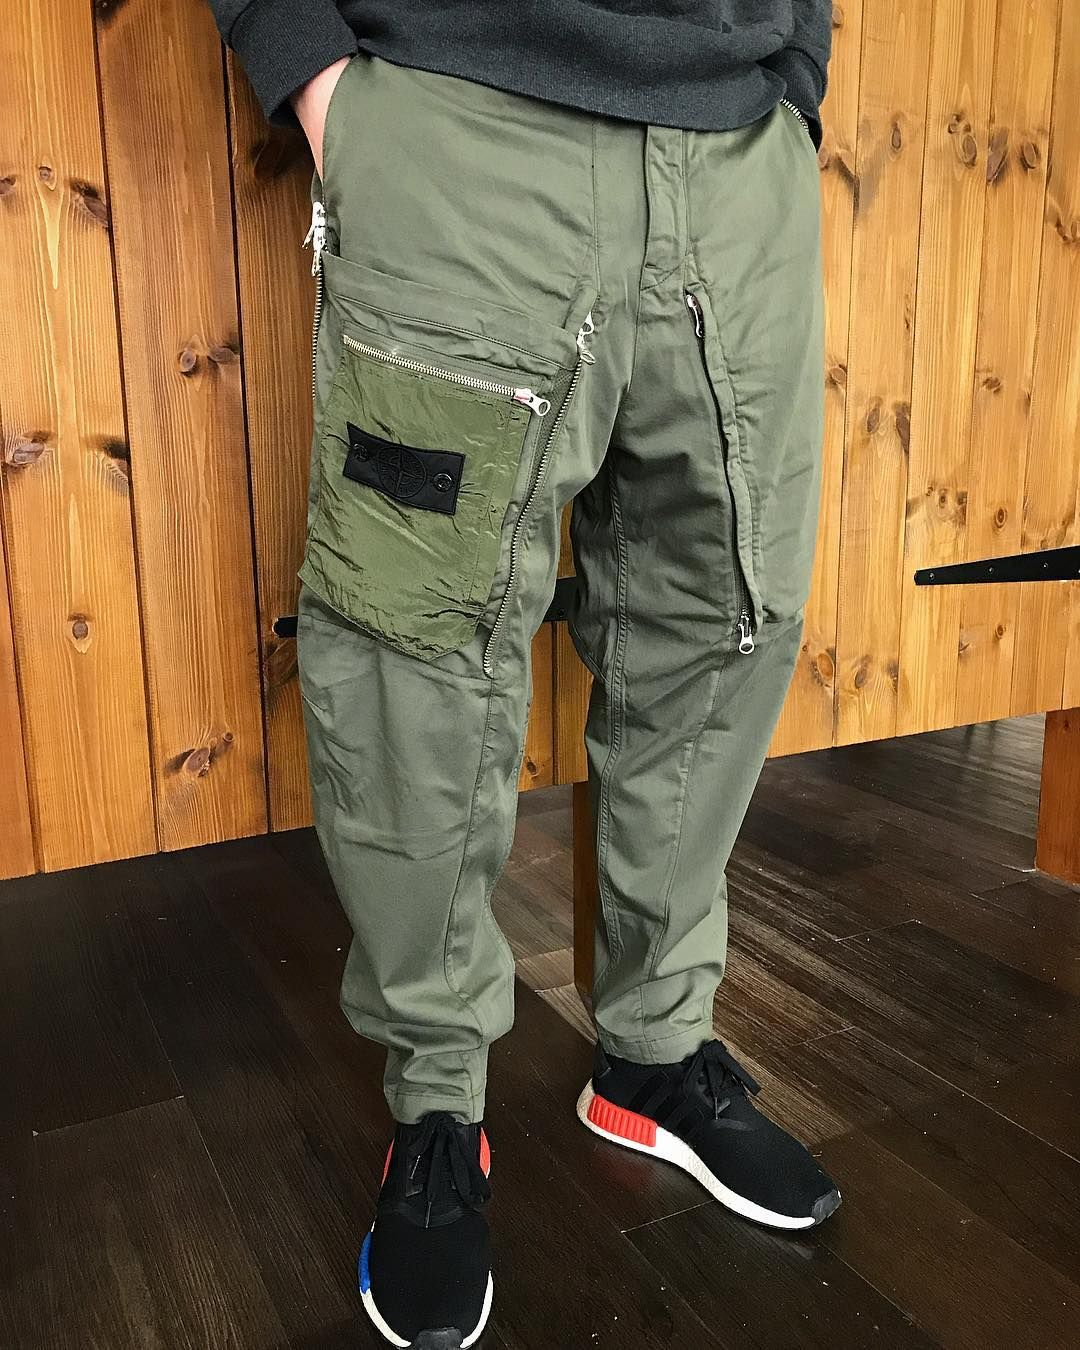 43221ca1c6 Stone Island Shadow Project military trousers - a stretch cotton ...